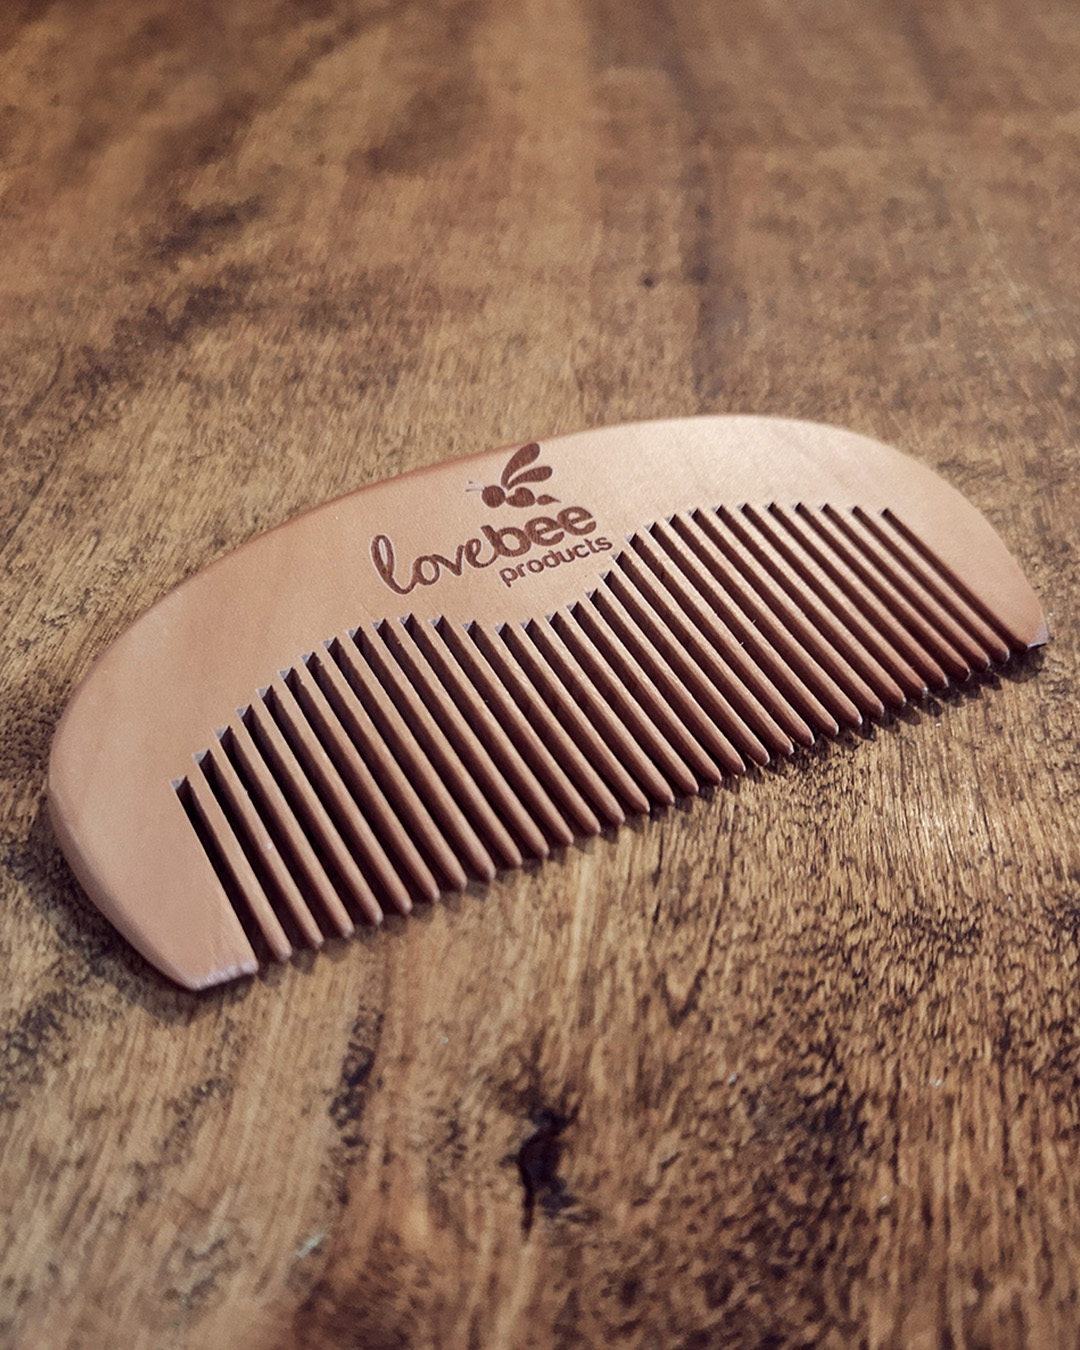 Beard Comb by Lovebee